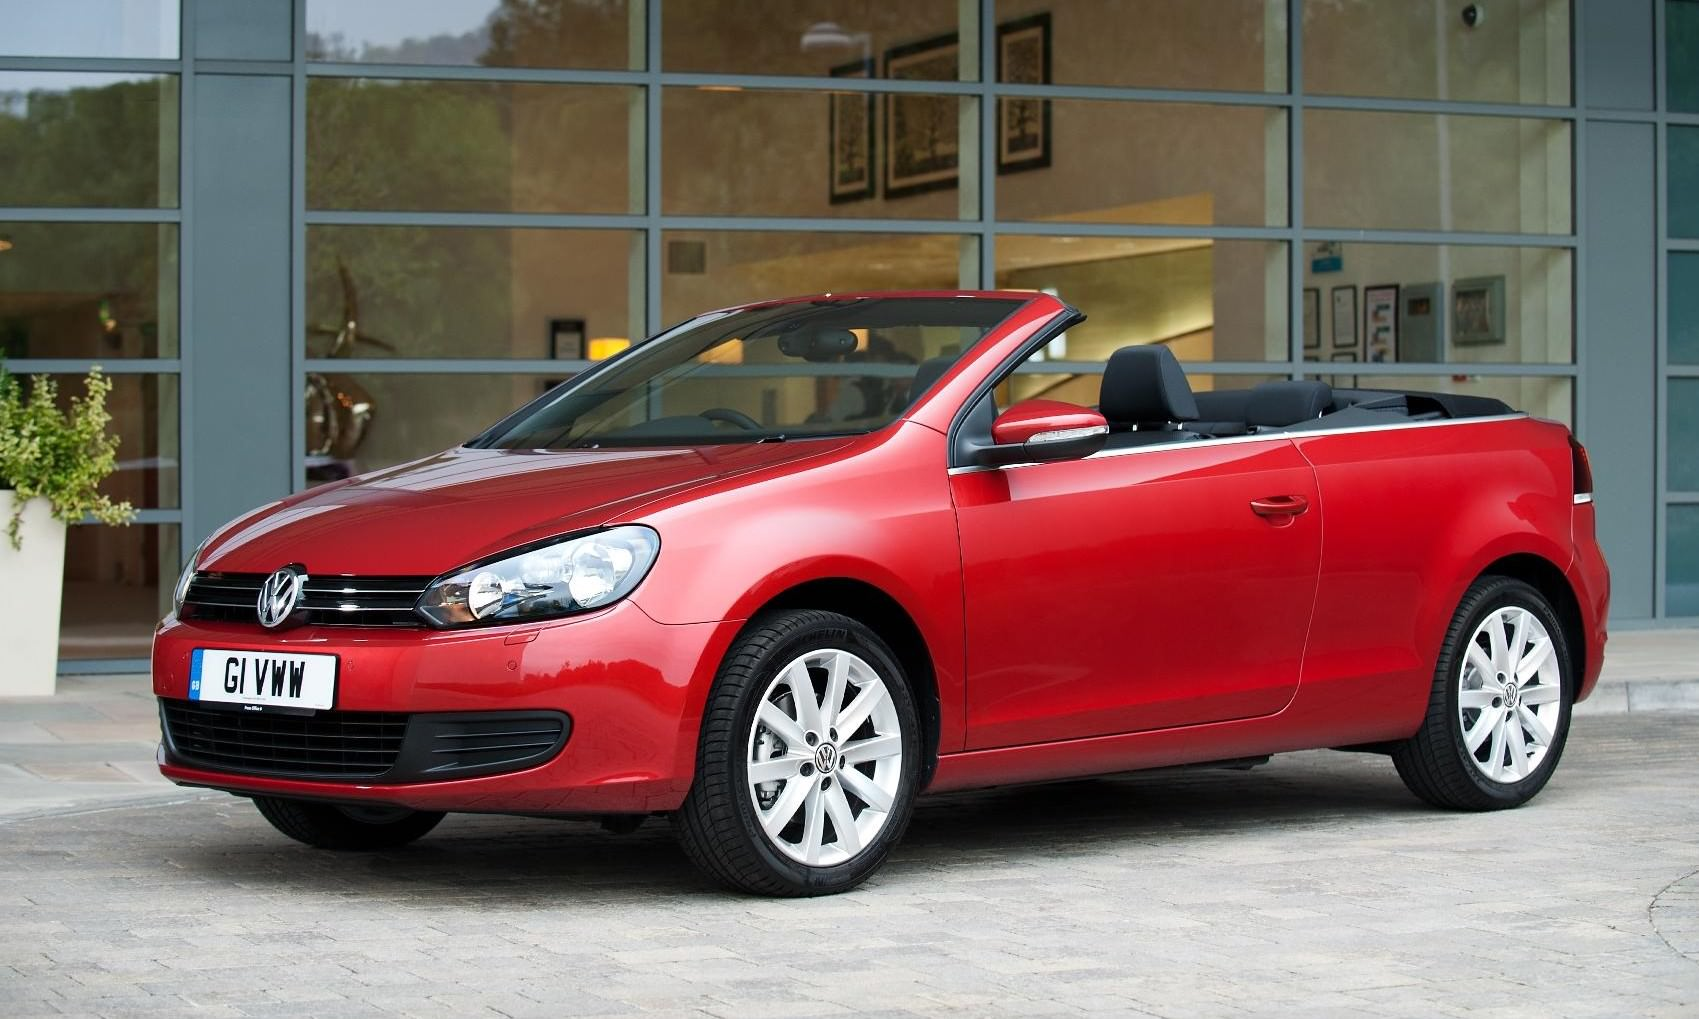 image of a red volkswagen golf cabrio convertible car exterior